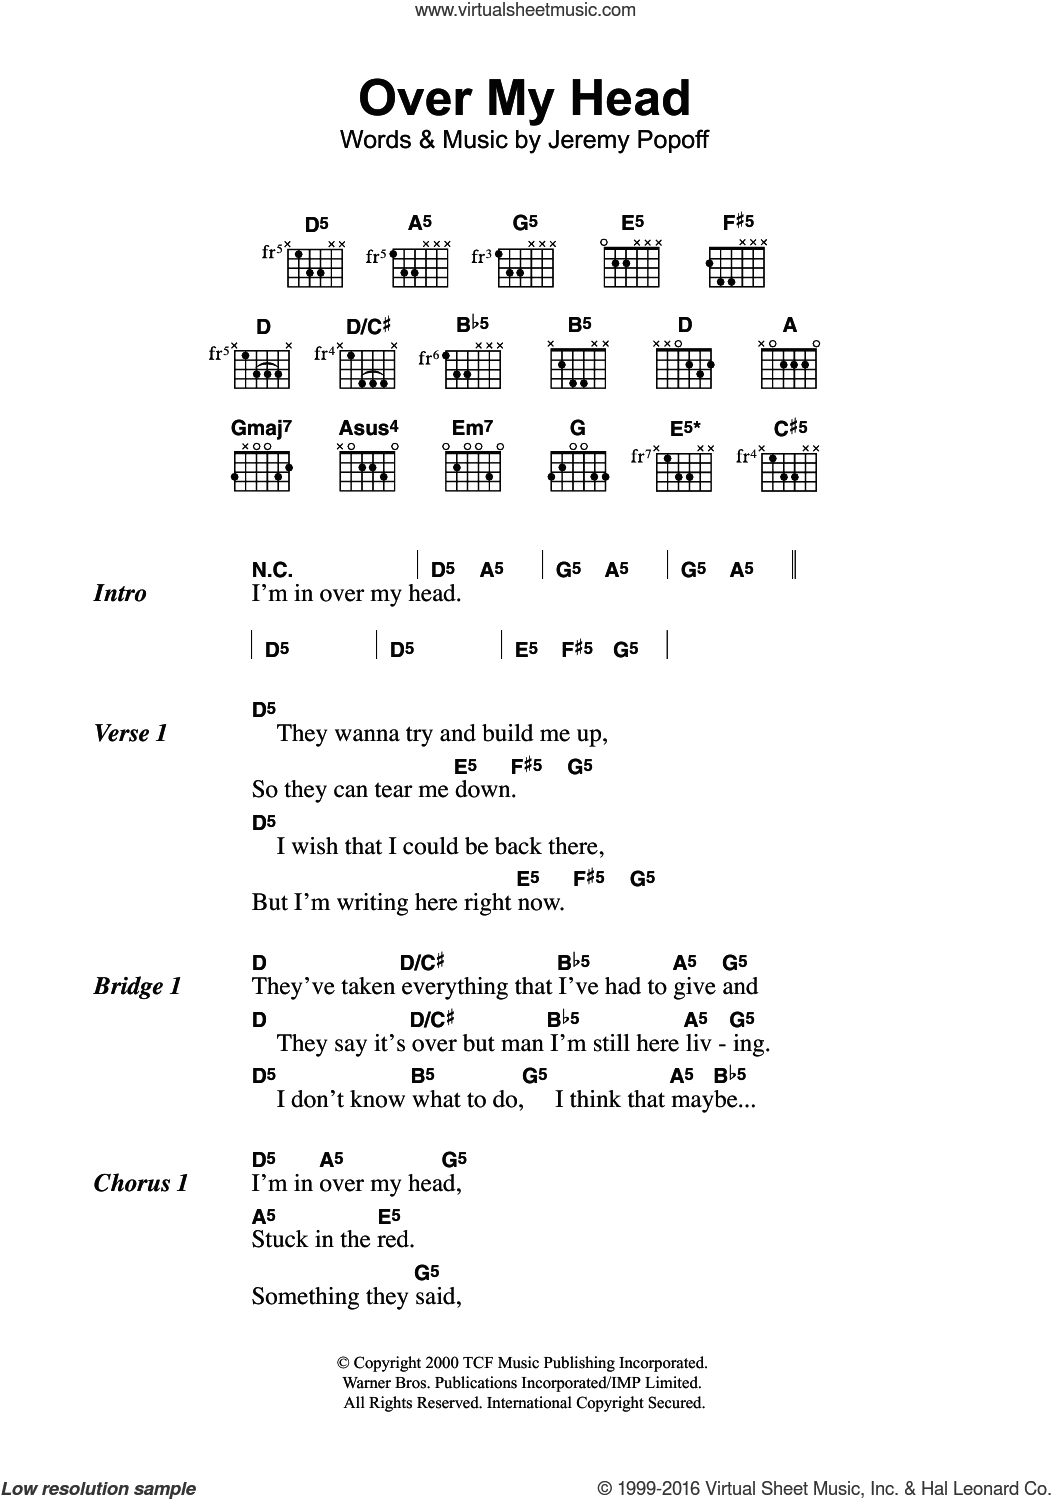 Over My Head sheet music for guitar (chords) by Jeremy Popoff